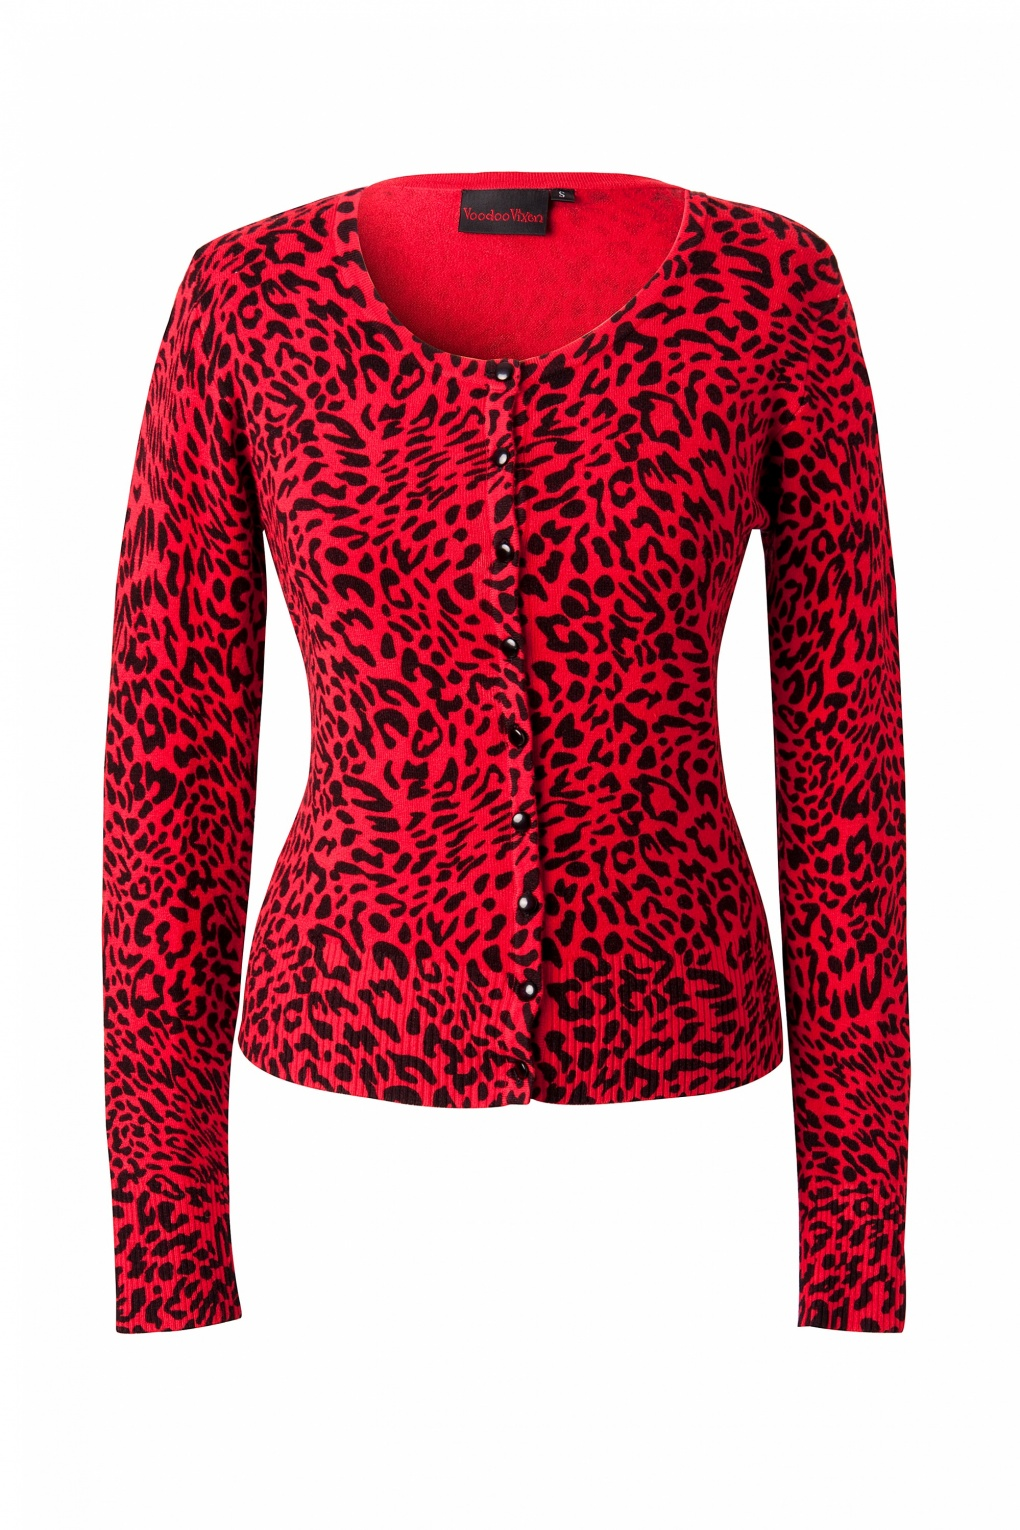 Shop for leopard printed sweater online at Target. Free shipping on purchases over $35 and save 5% every day with your Target REDcard.